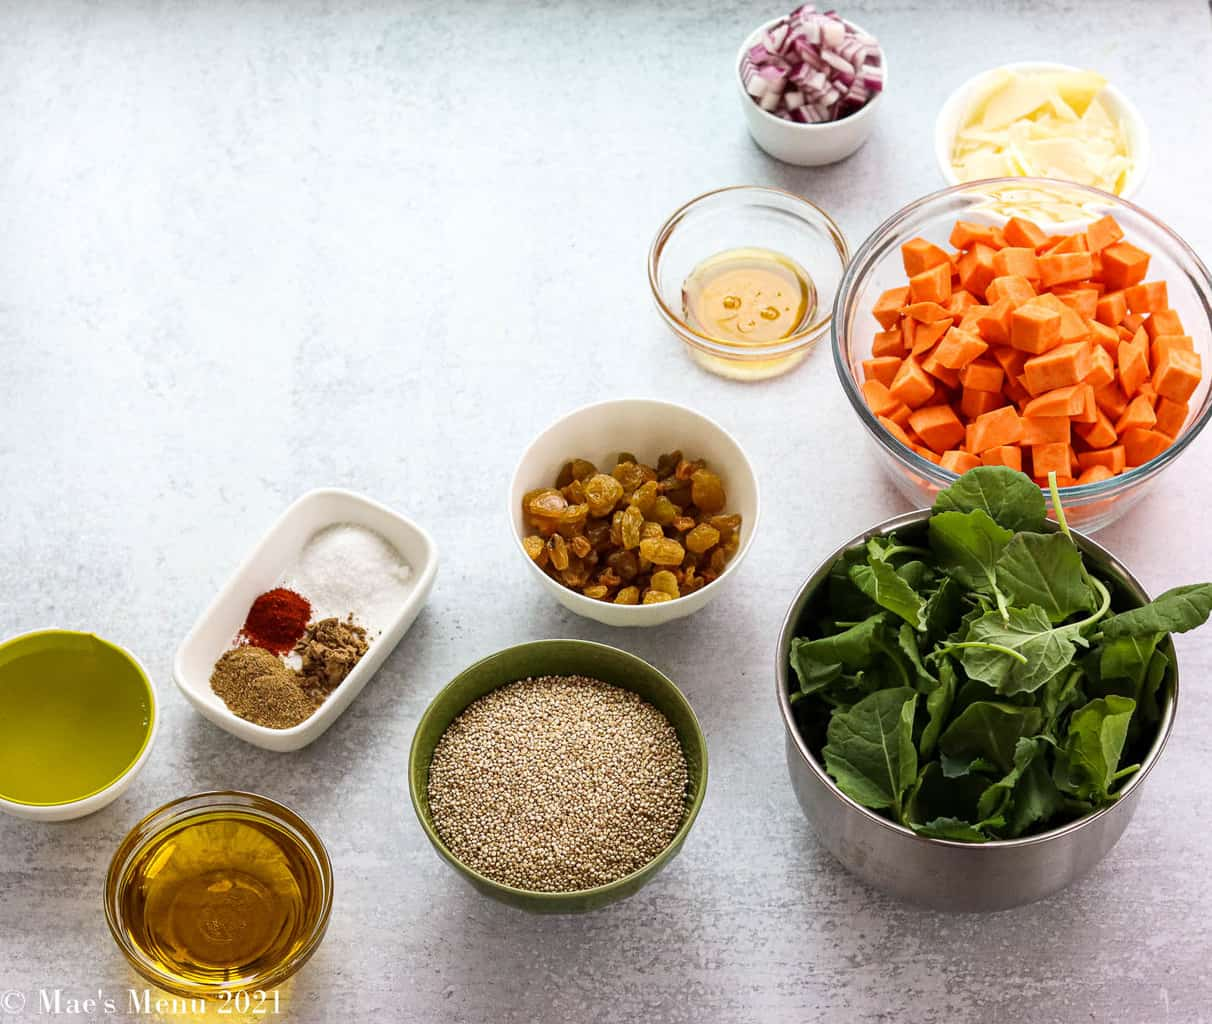 All the ingredients for sweet potato quinoa salad